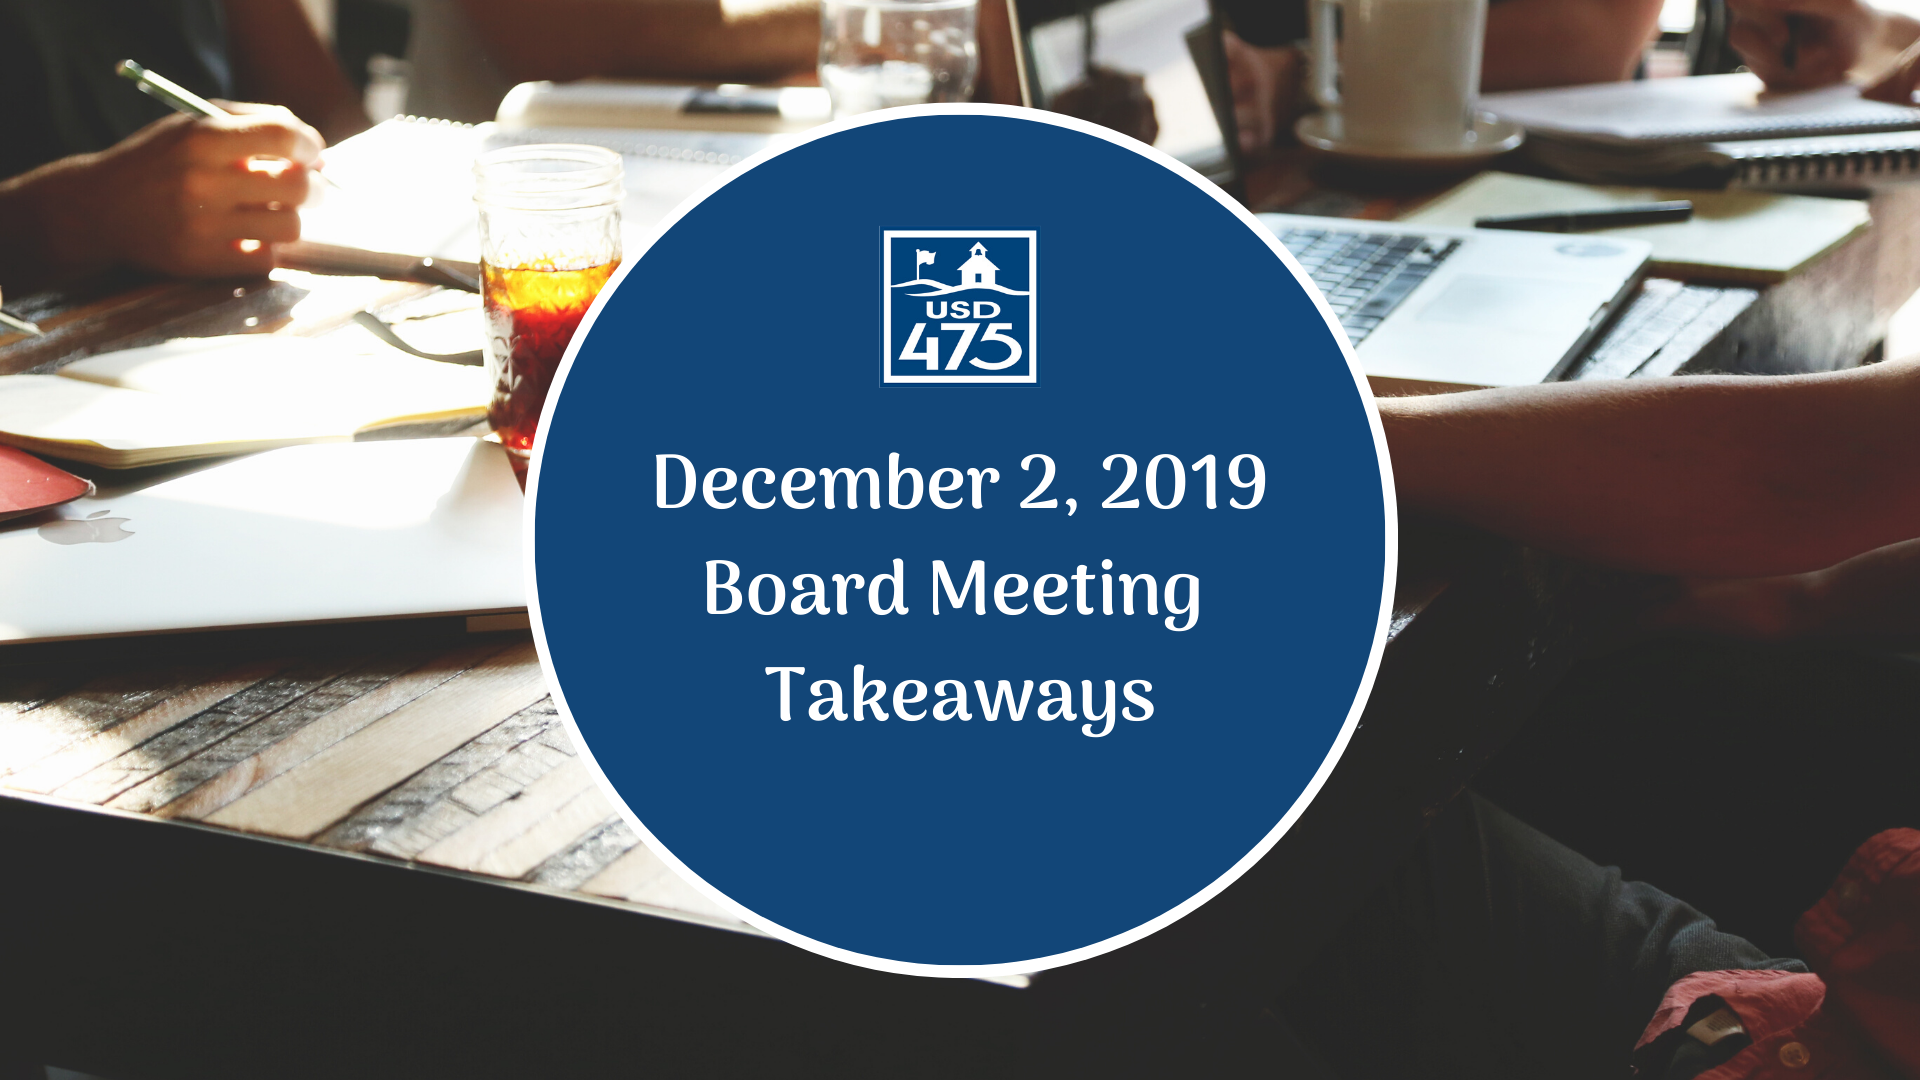 Board Meeting Takeaways